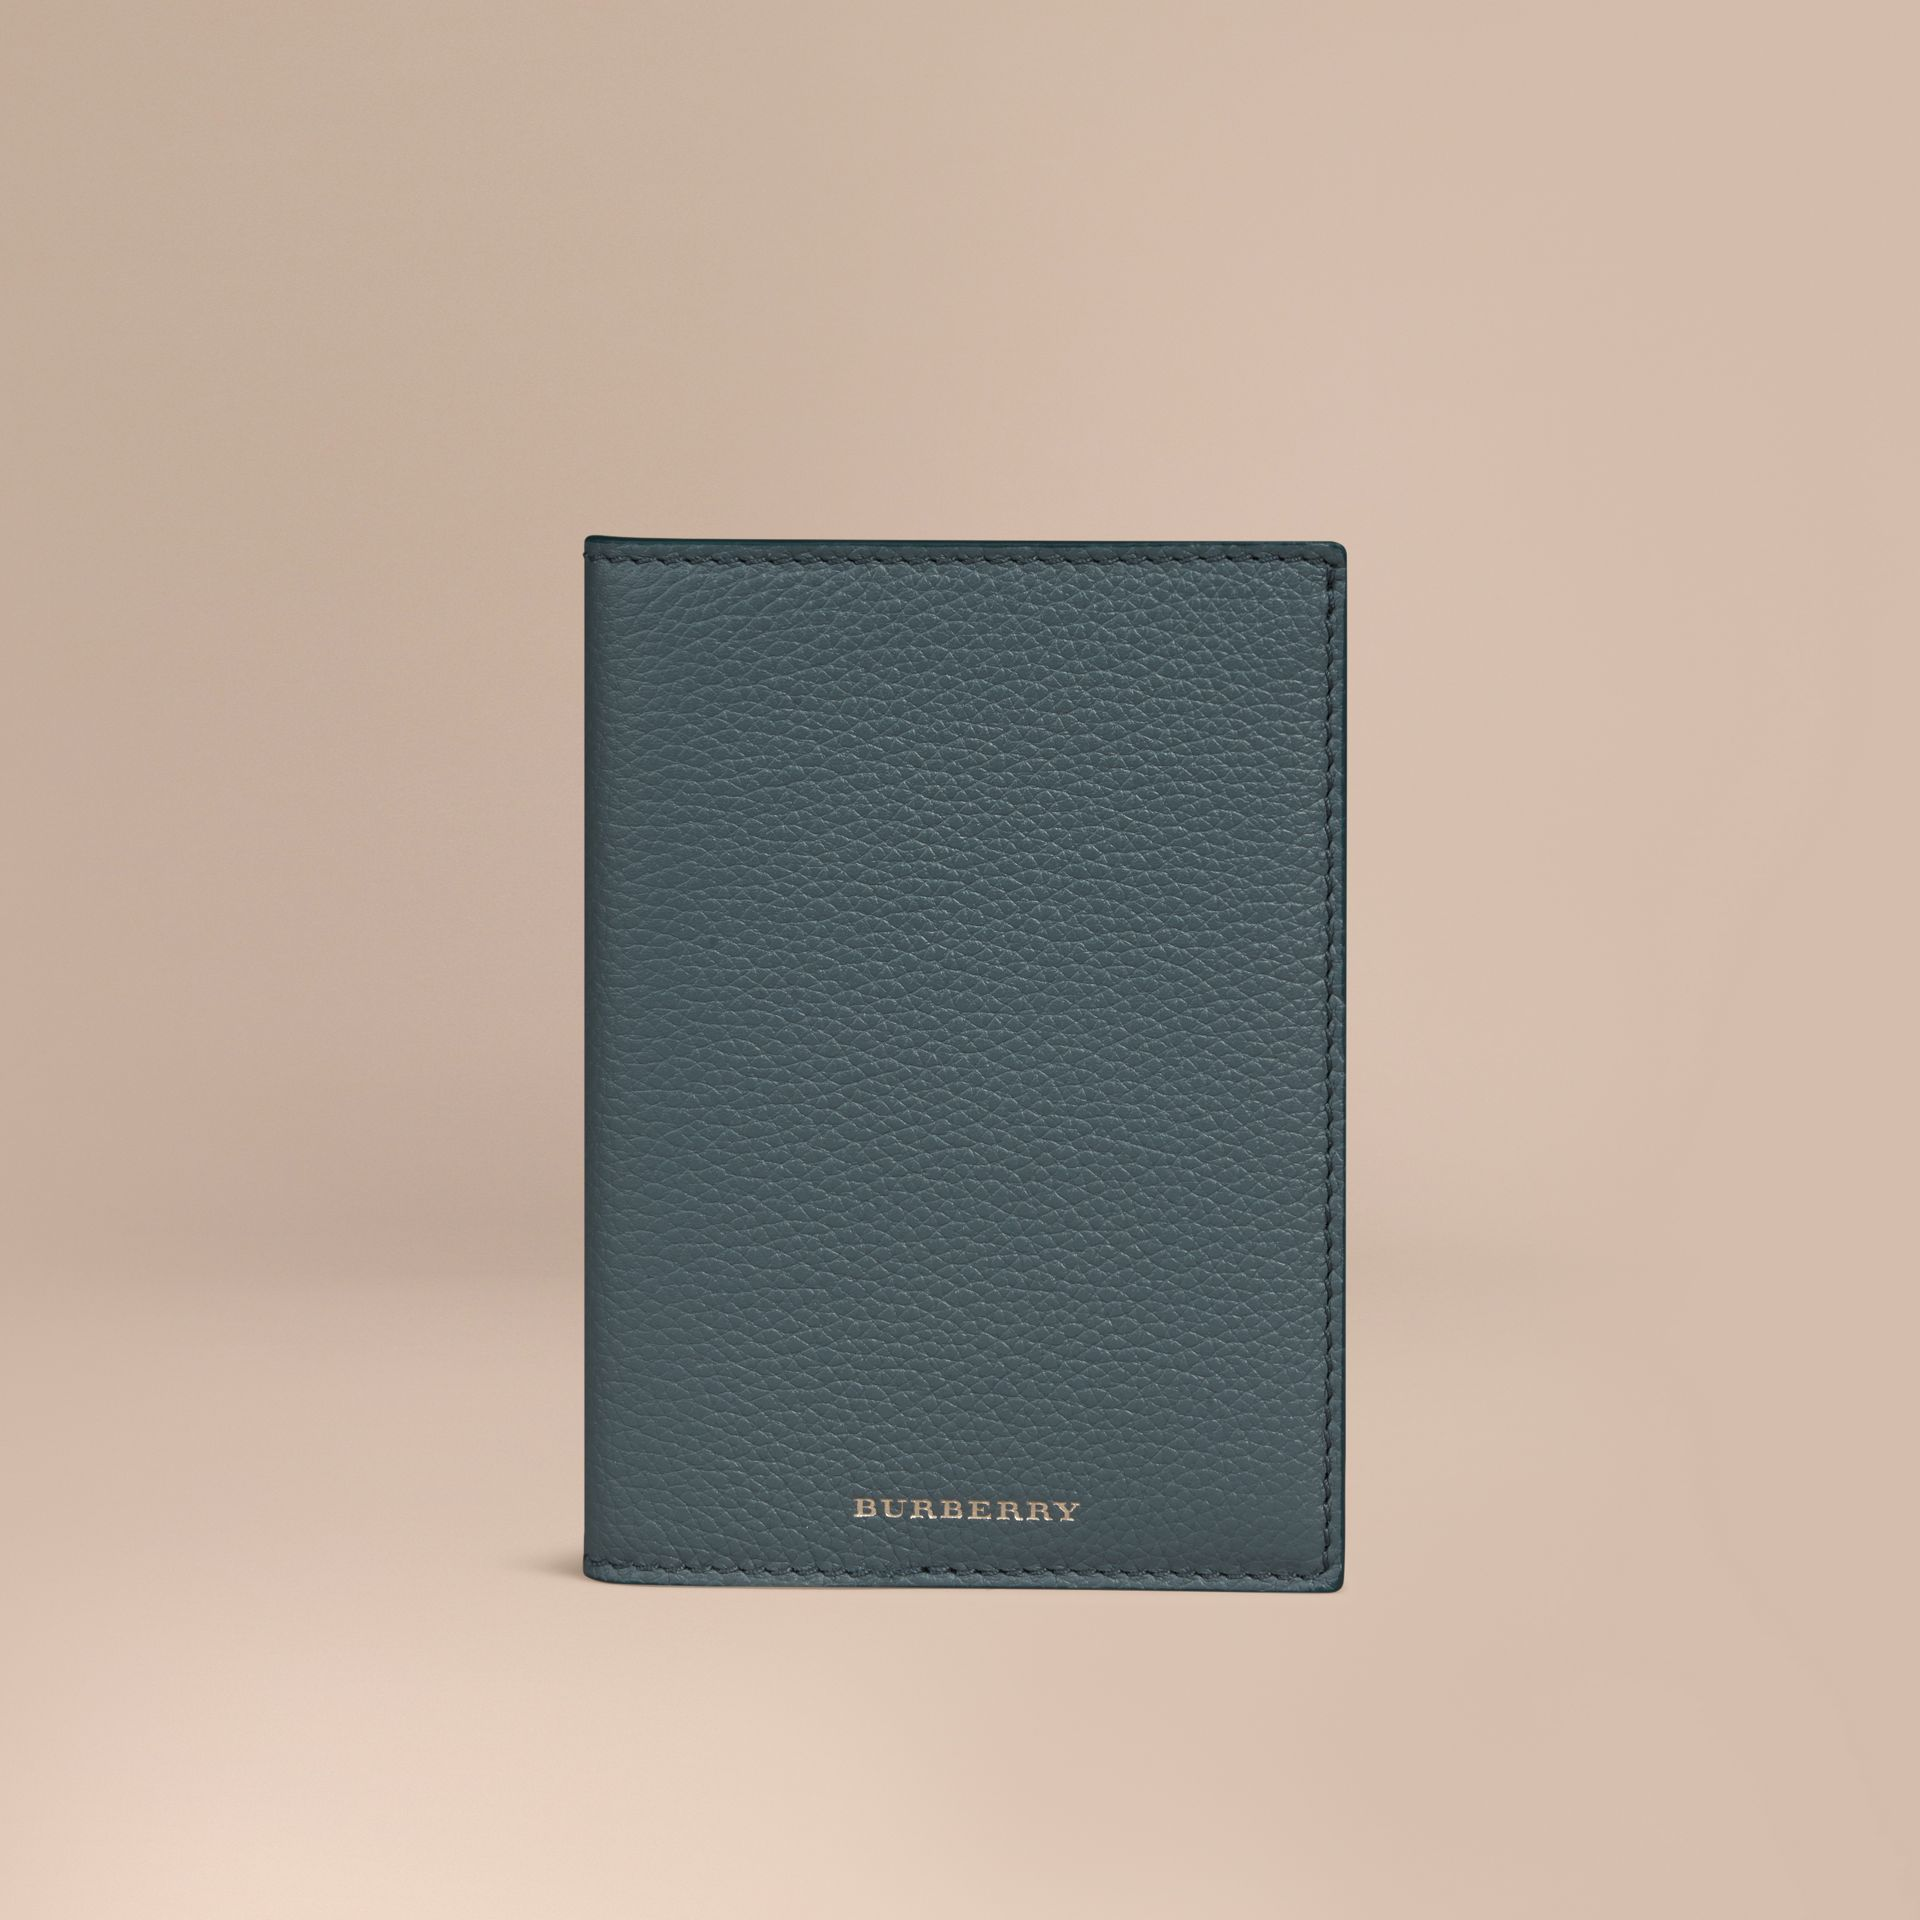 Dusty teal Grainy Leather Passport Cover Dusty Teal - gallery image 1